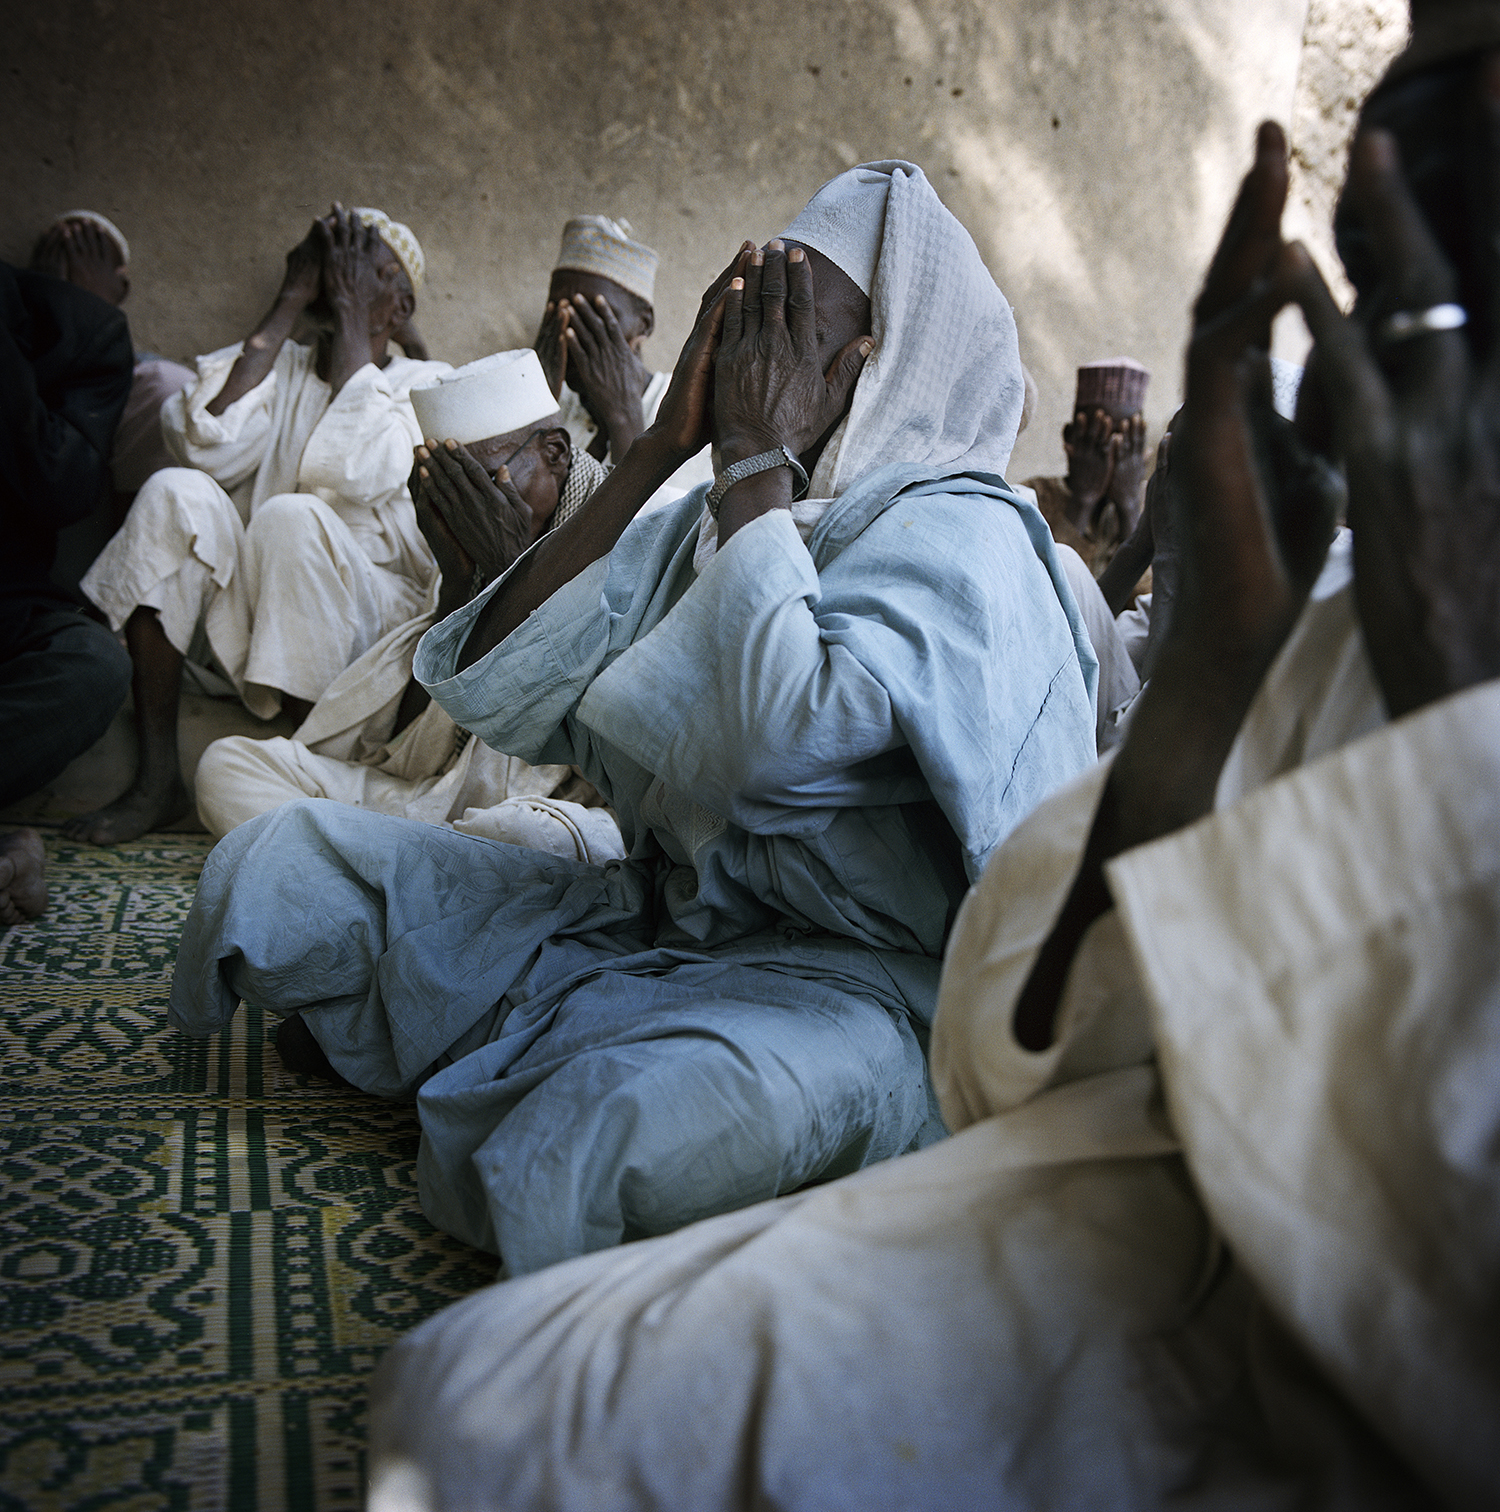 Child_Marriage_Niger_014.jpg